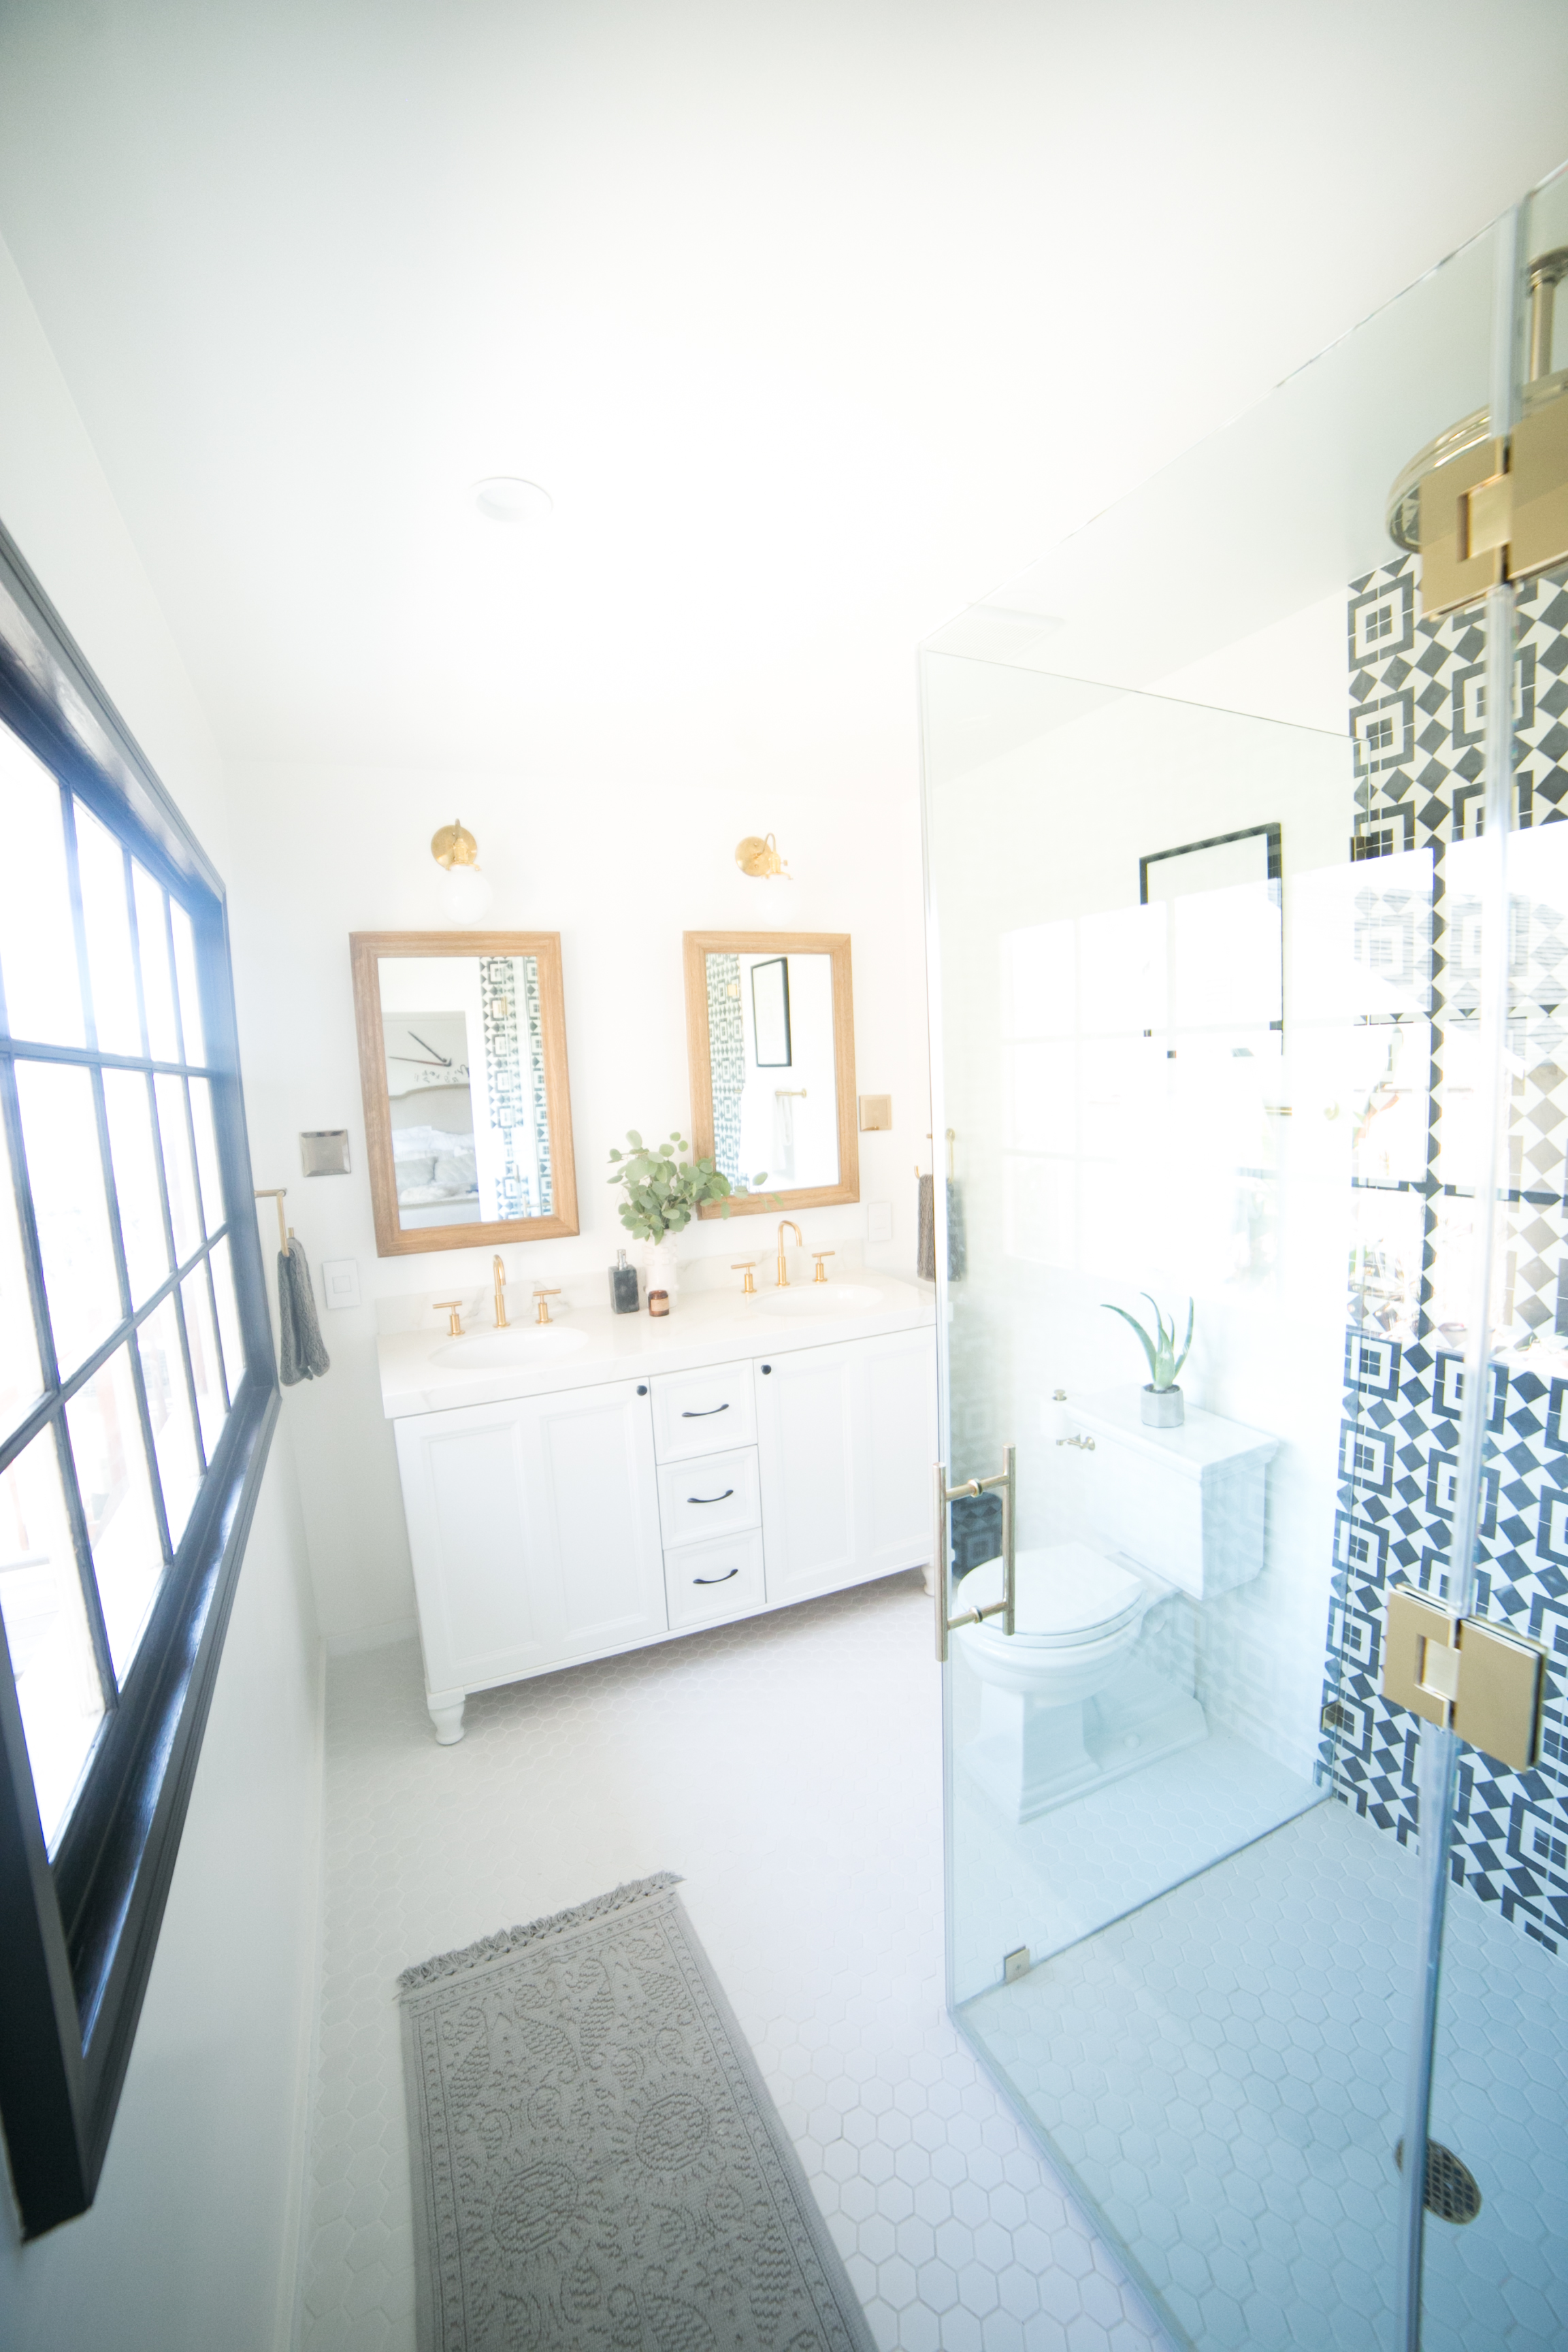 Mr. Kate - OMG We Bought A House: Master Bathroom Reveal!